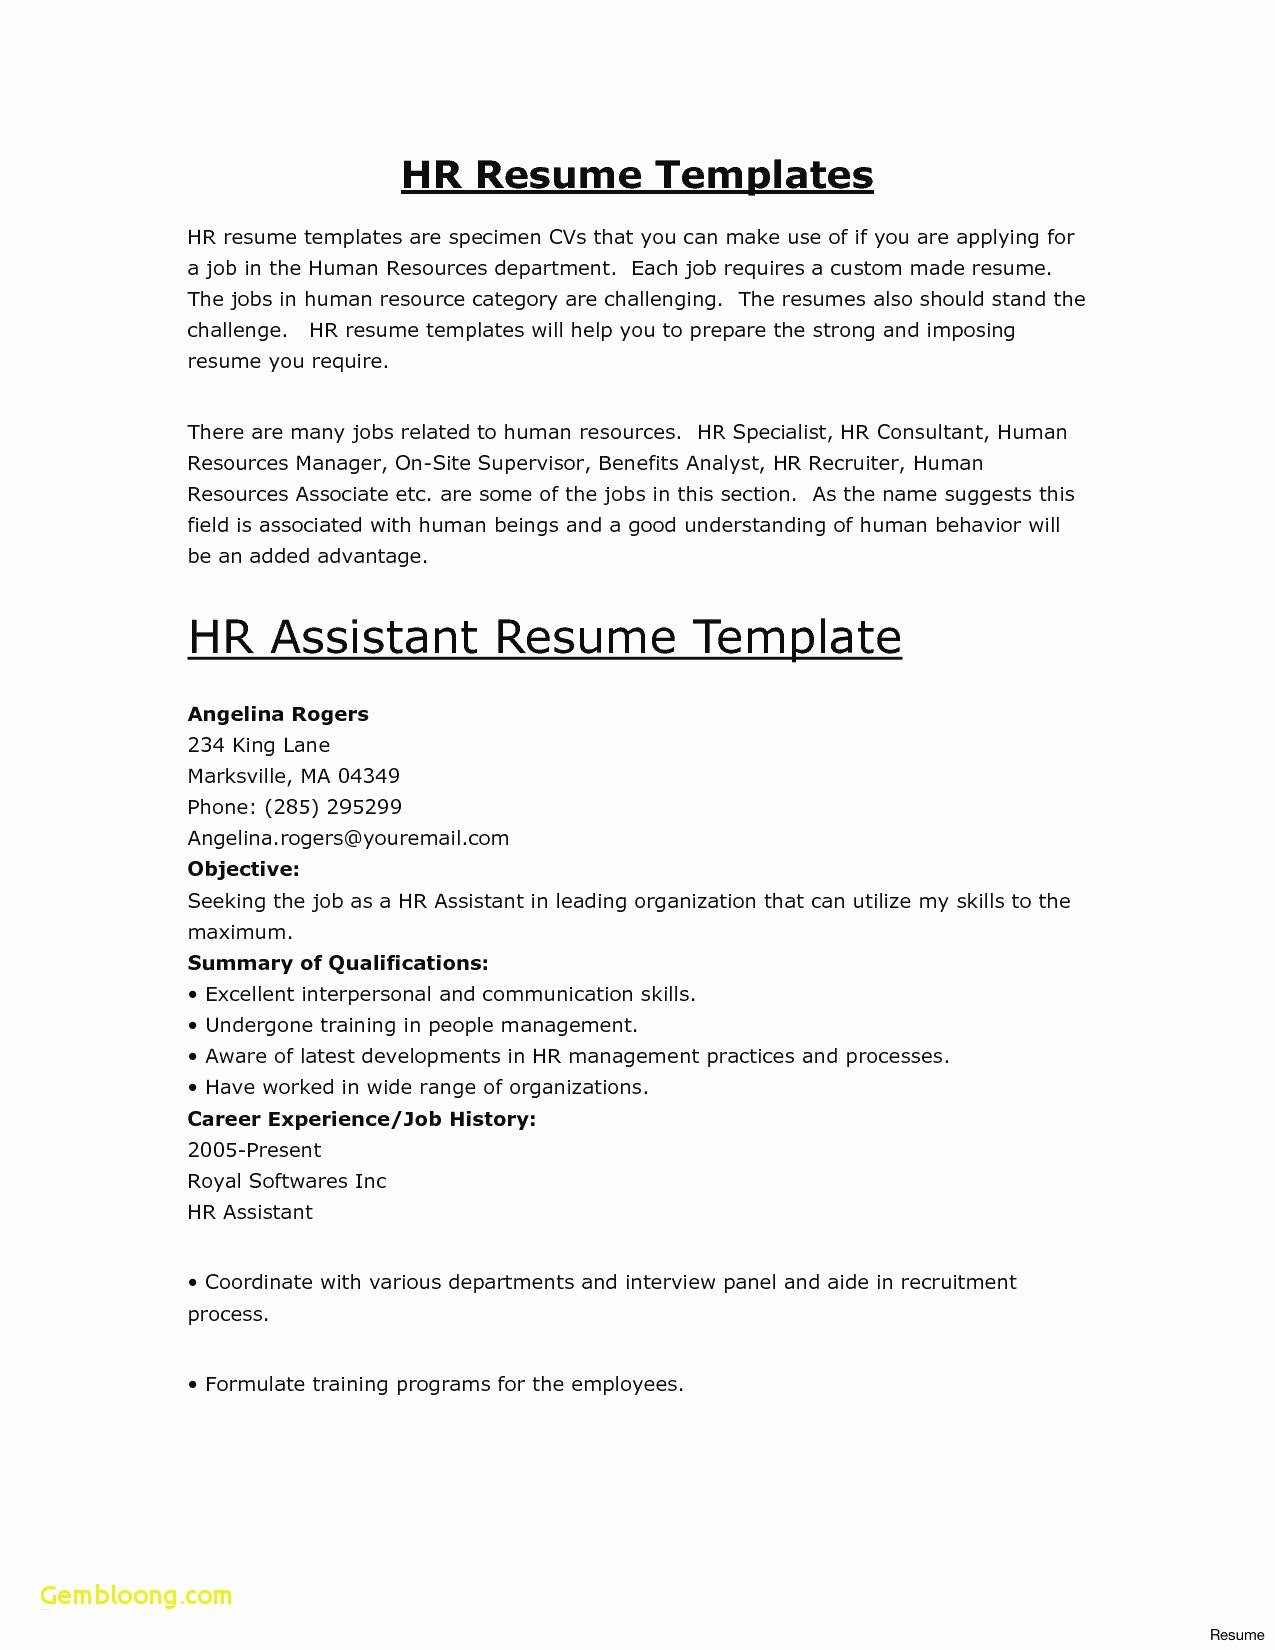 Guerrilla Resume 14 Good Resume Templates Collection Resume Database Template